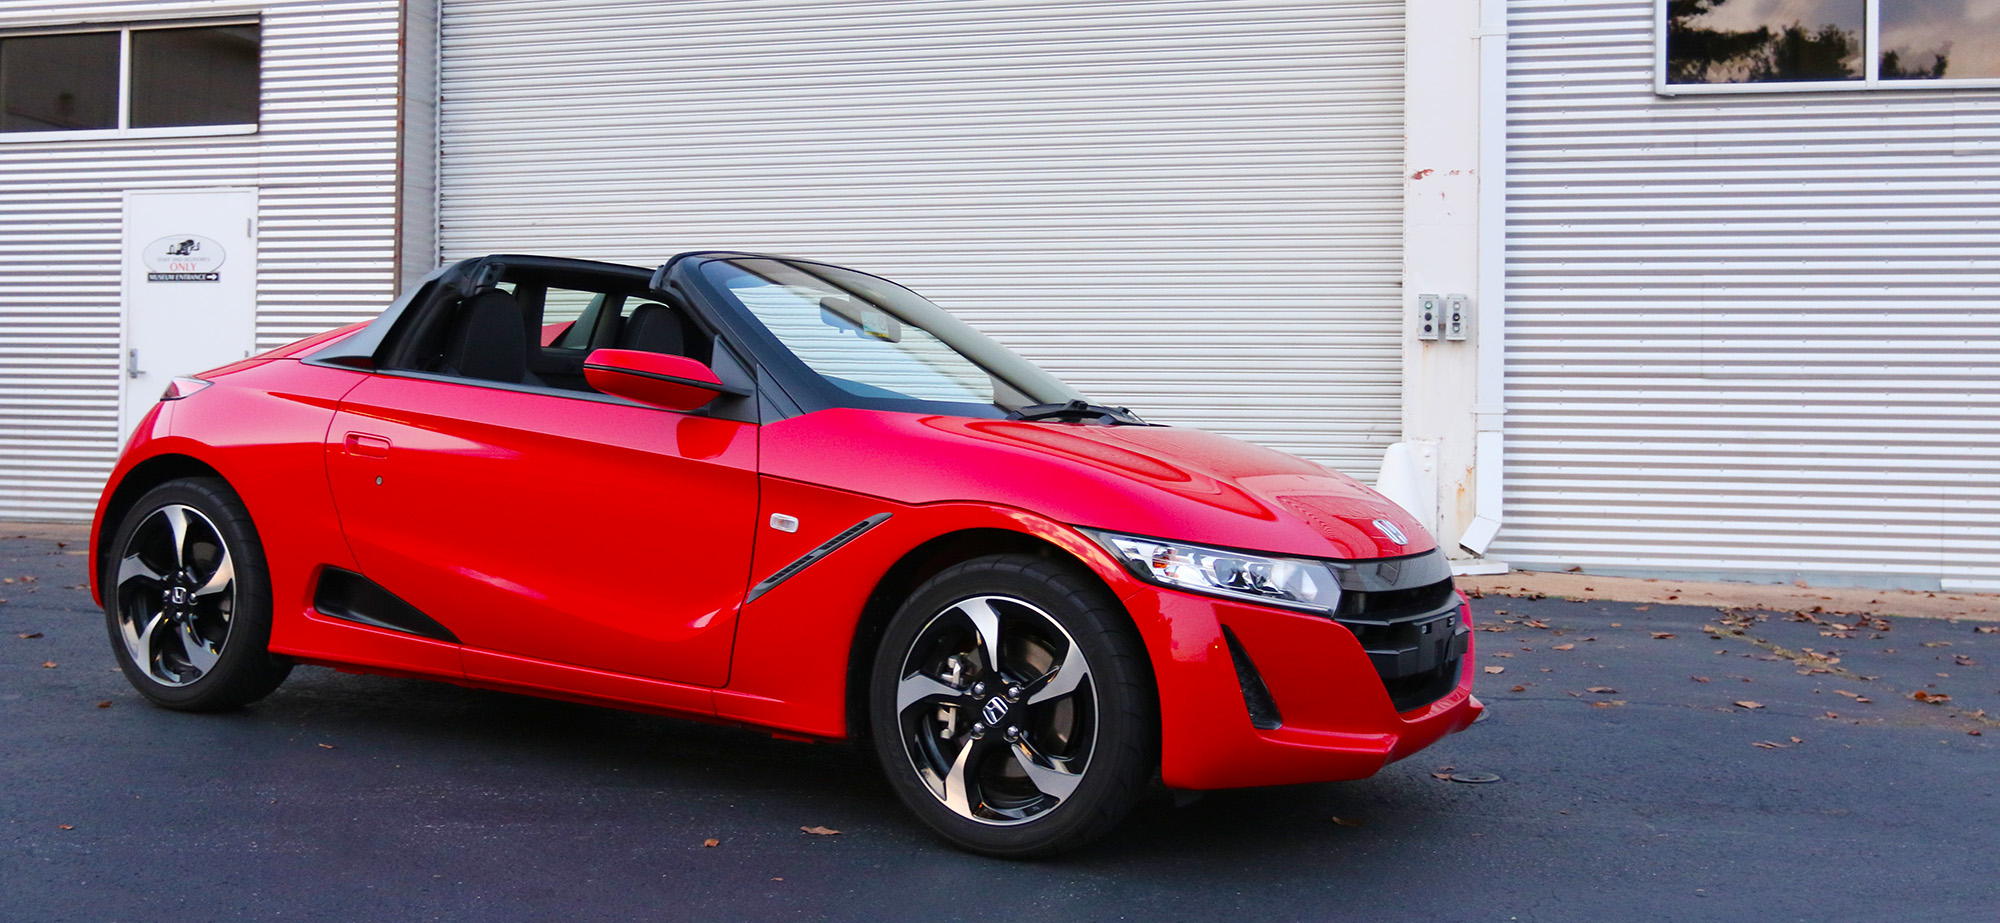 We Drive The Honda S660 Be Careful What You Wish For Articles